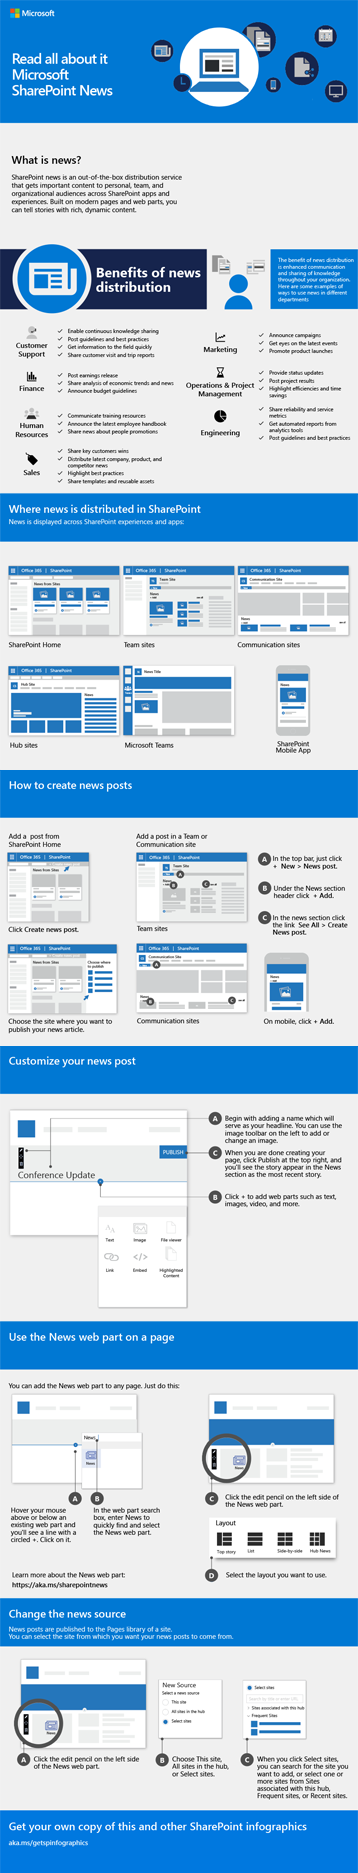 Quick Cheat Sheets: Great Tips for Working with SharePoint